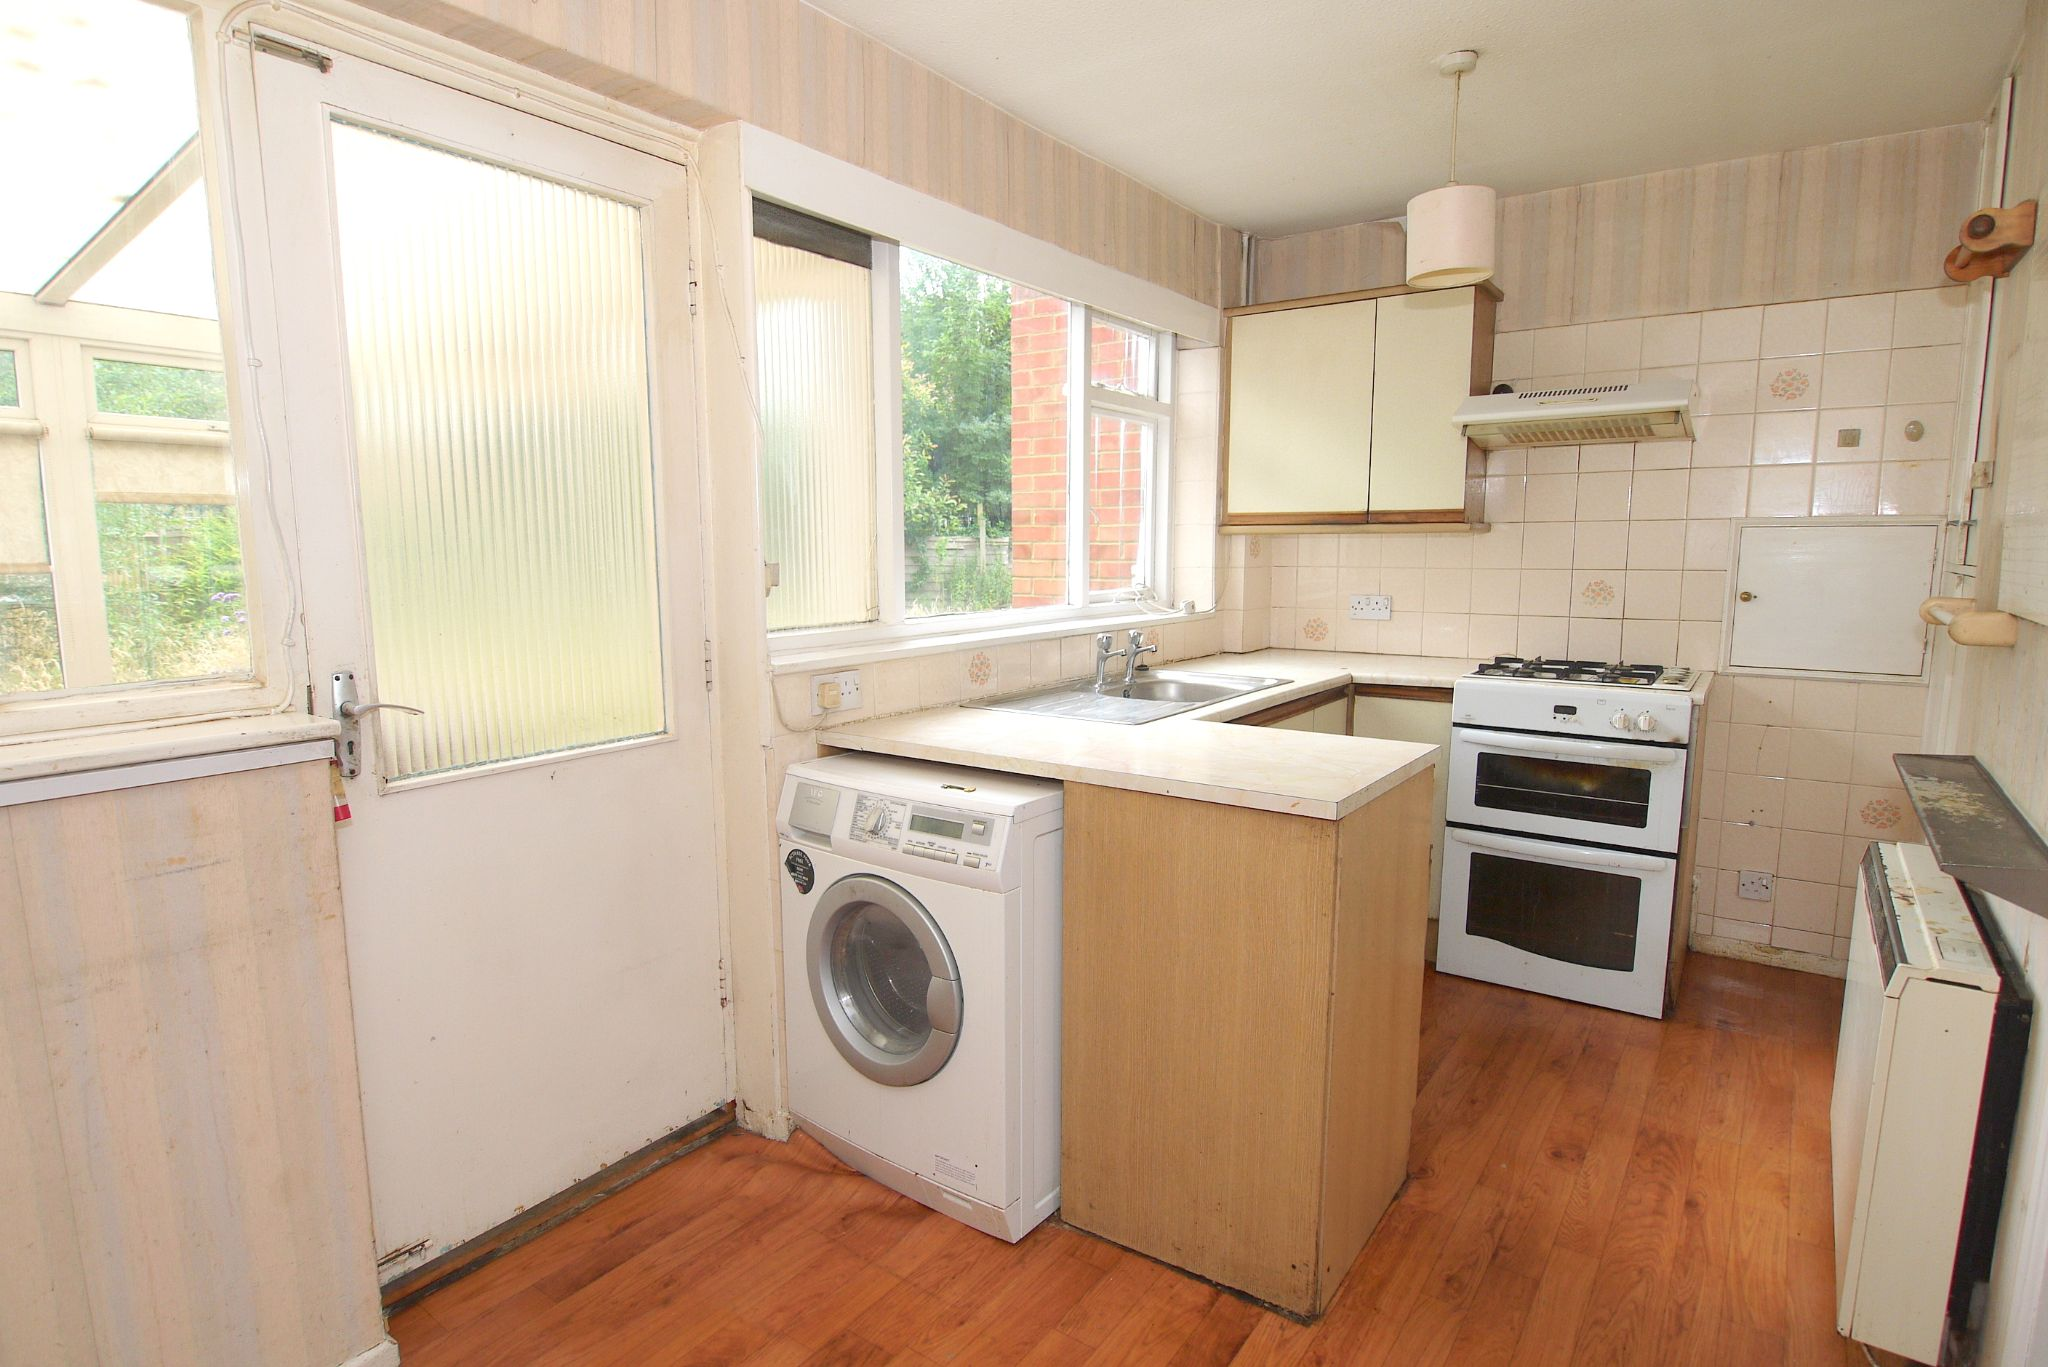 5 bedroom semi-detached house For Sale in Sevenoaks - Photograph 4